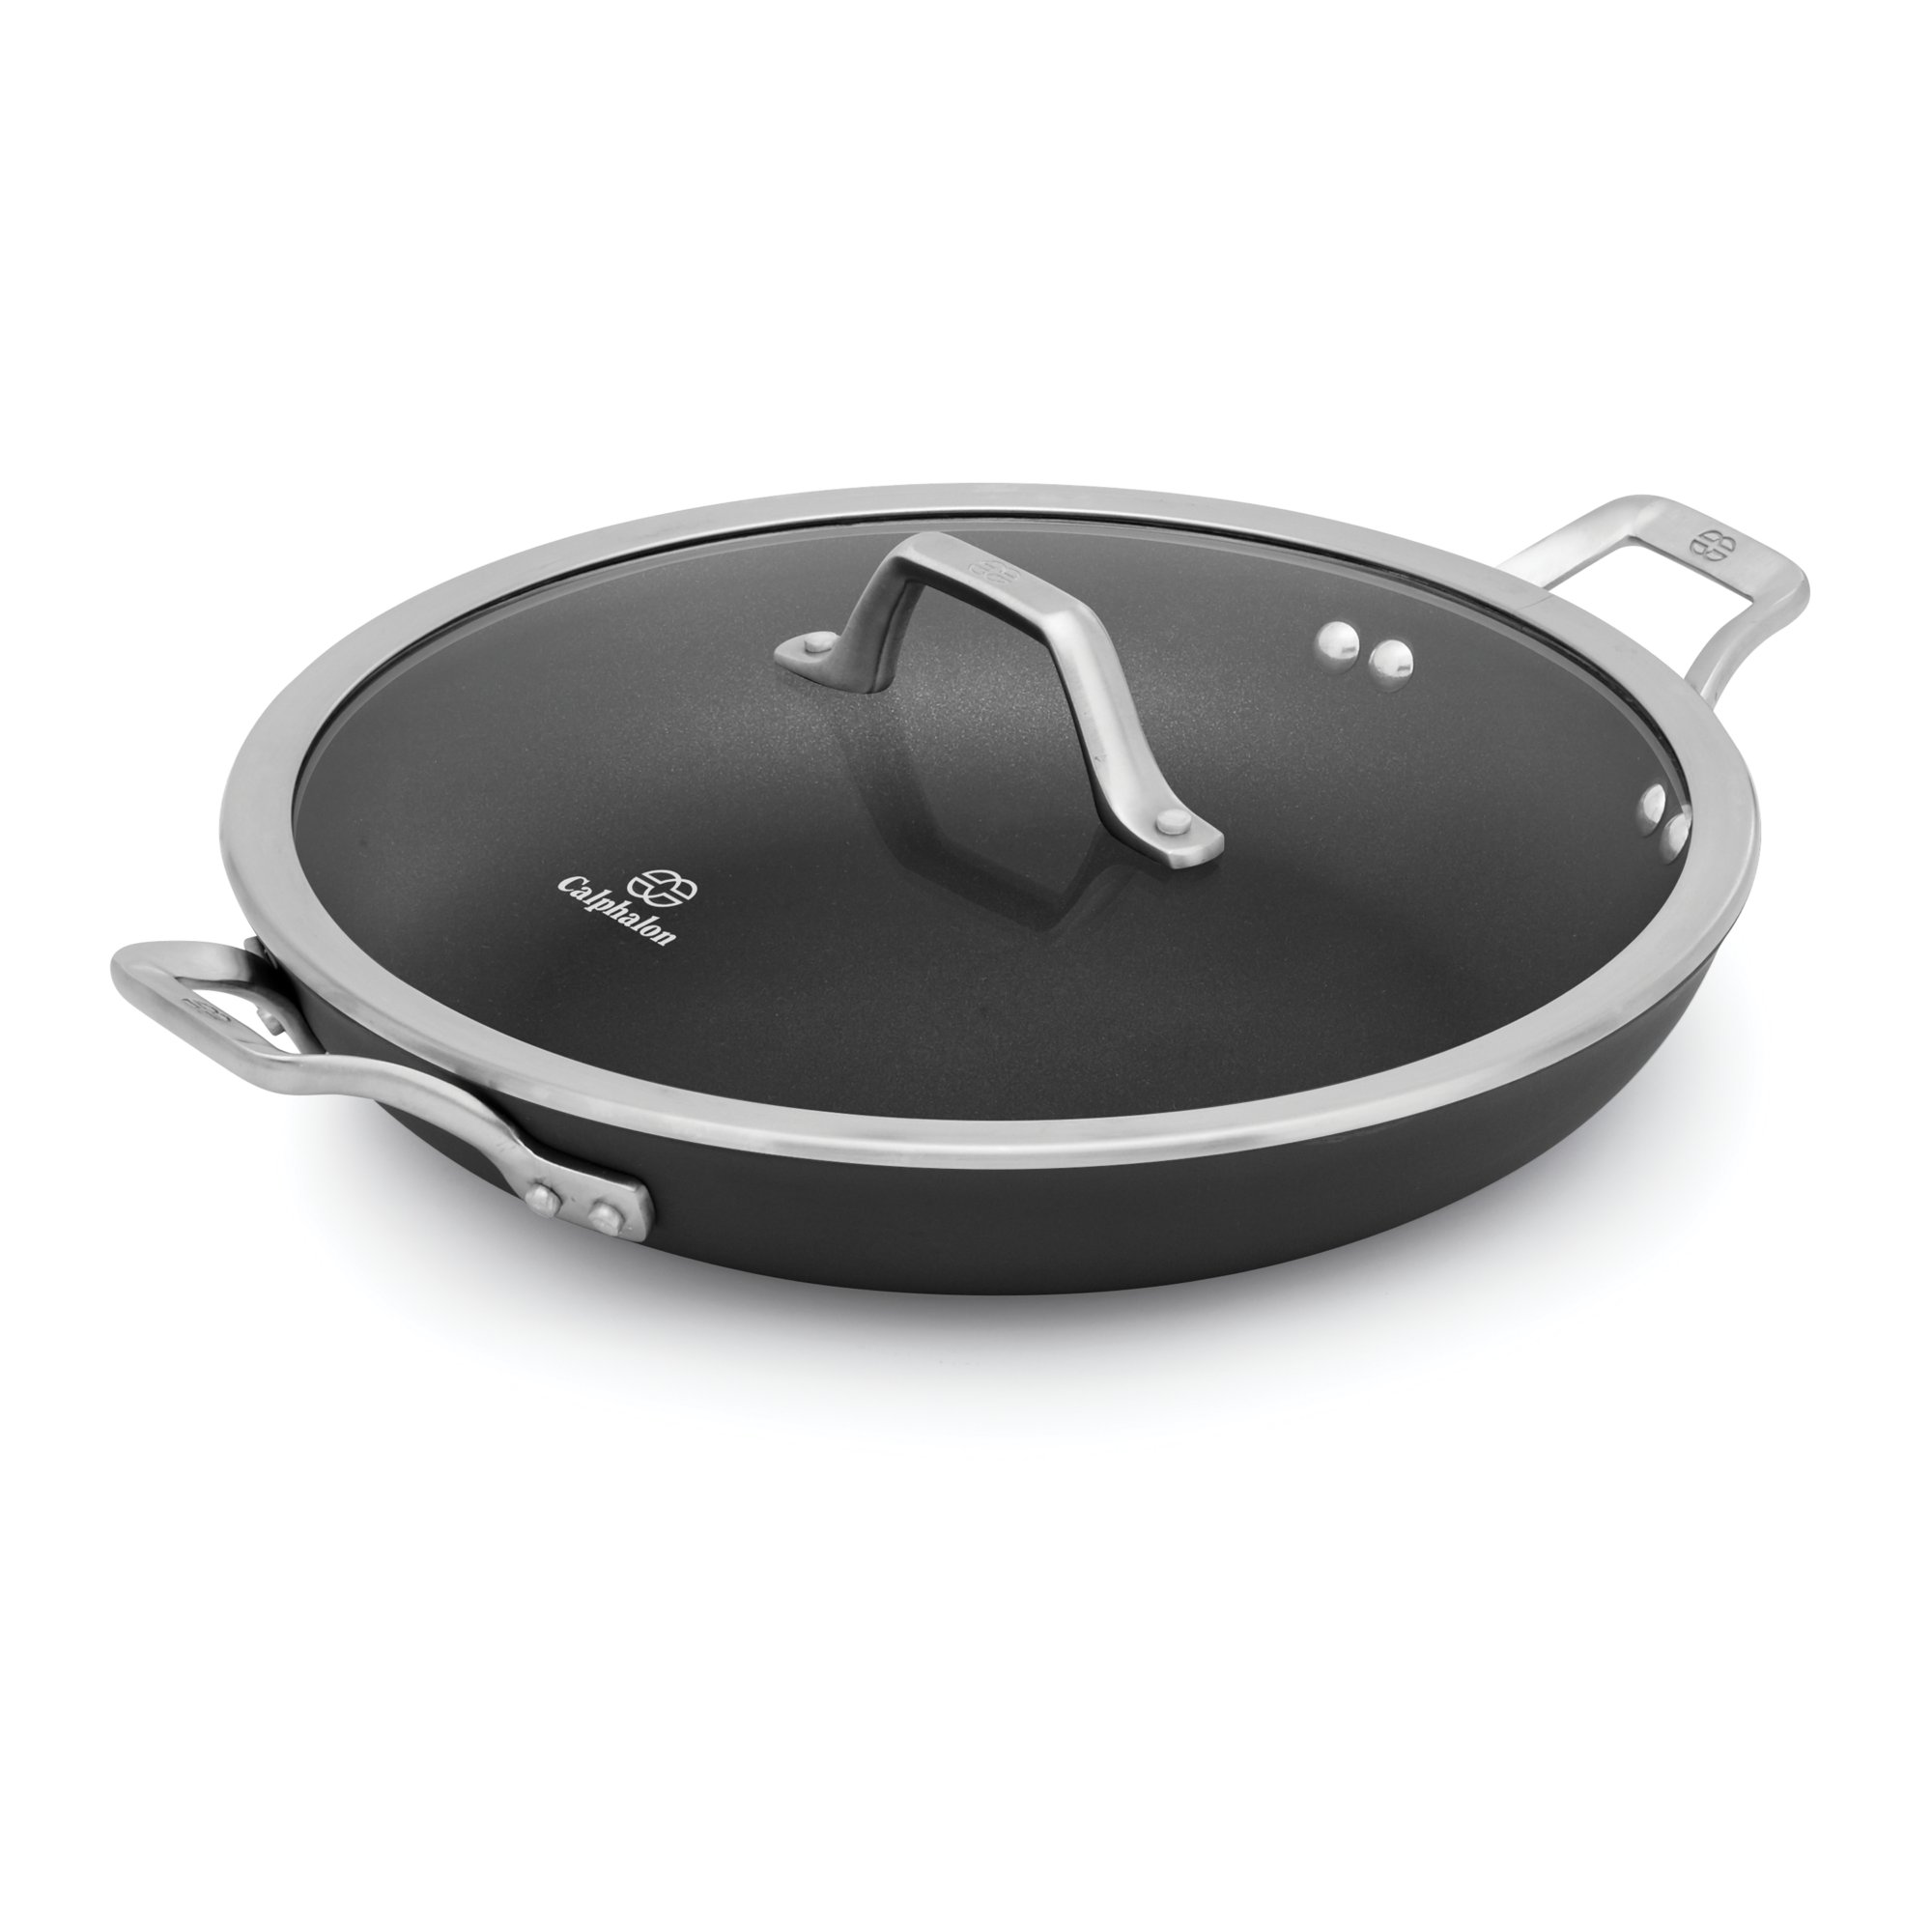 Calphalon Signature Nonstick 12 In Everyday Pan With